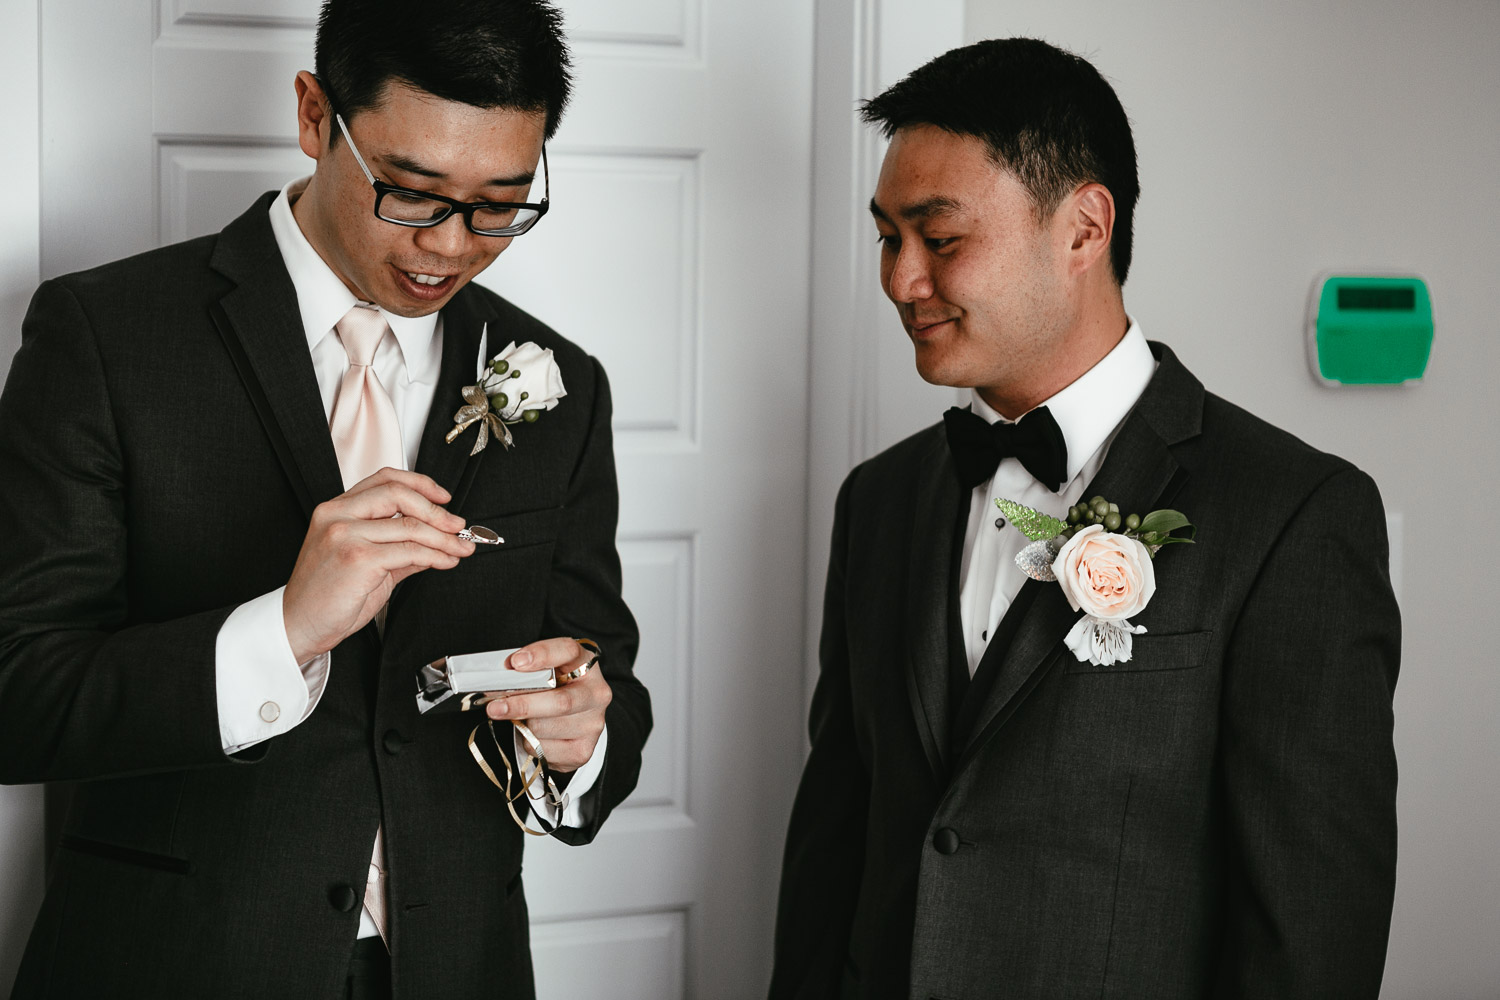 best man and groomsmen gifts vancouver wedding photography